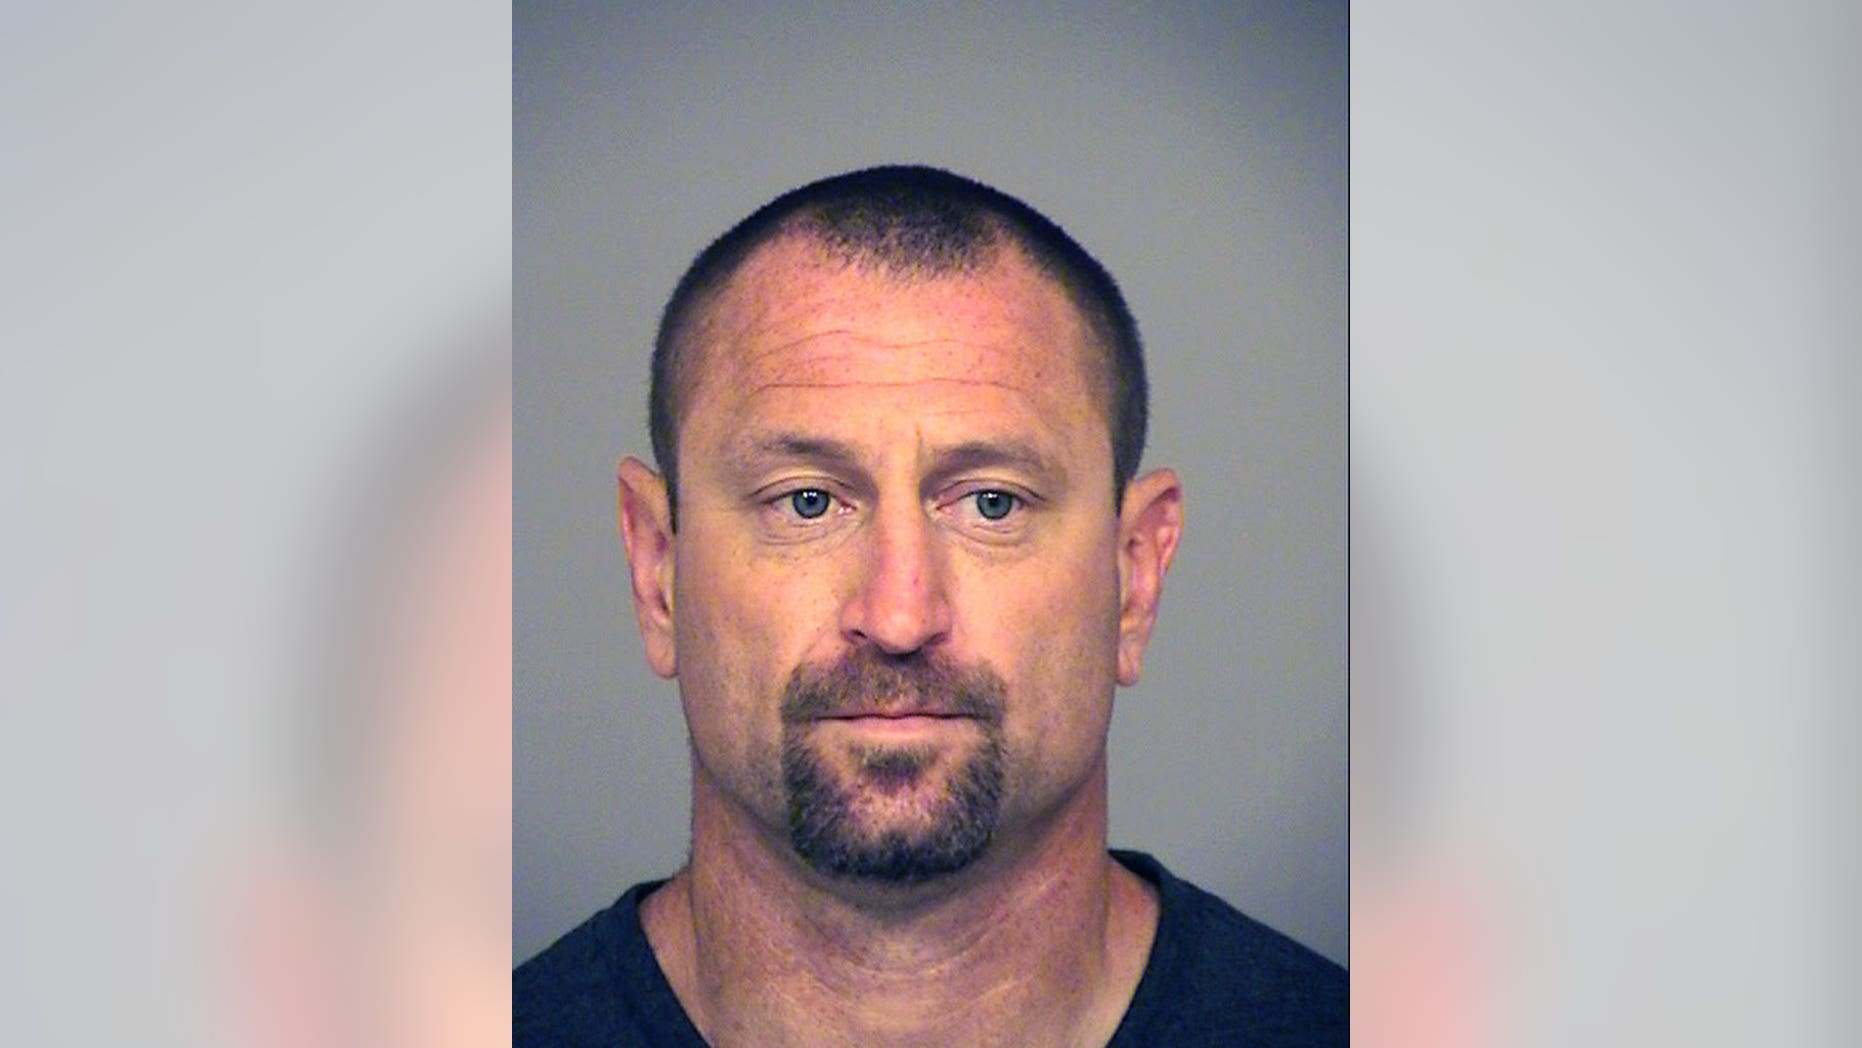 Andrew Jensen, 42, was arrested on July 28 on suspicion of committing a burglary. (Ventura County Sheriff)